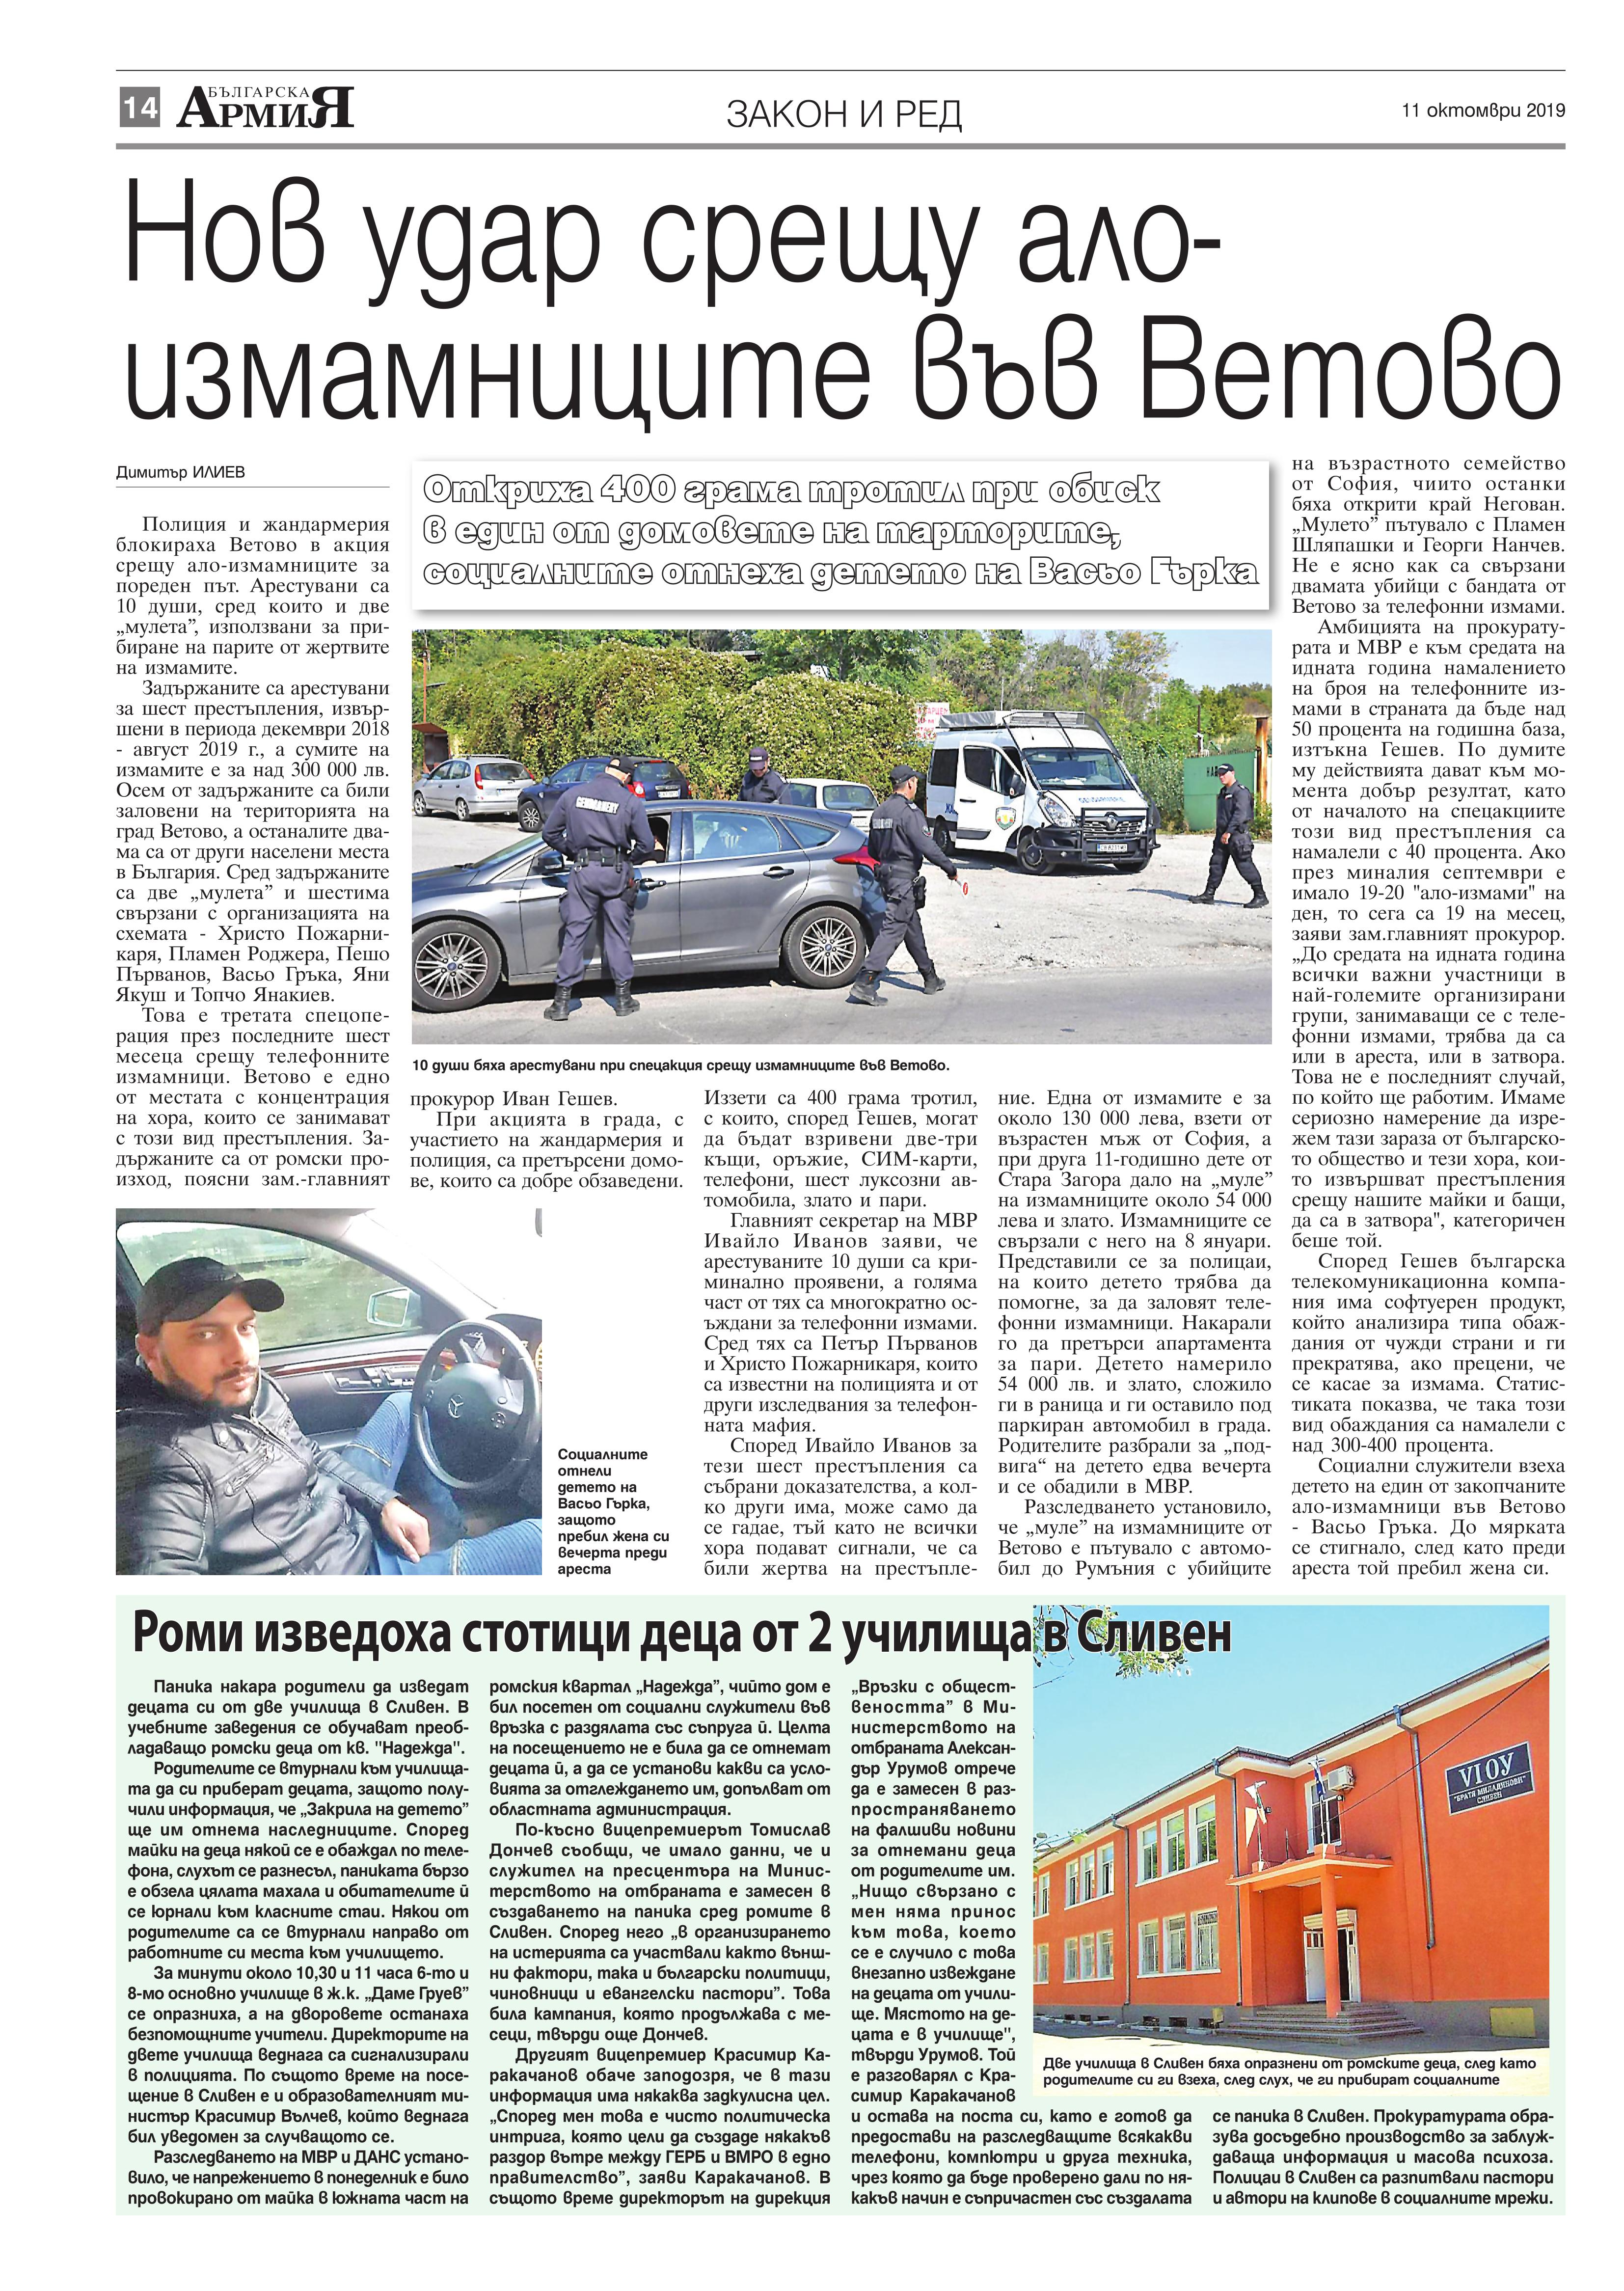 https://www.armymedia.bg/wp-content/uploads/2015/06/14.page1_-111.jpg